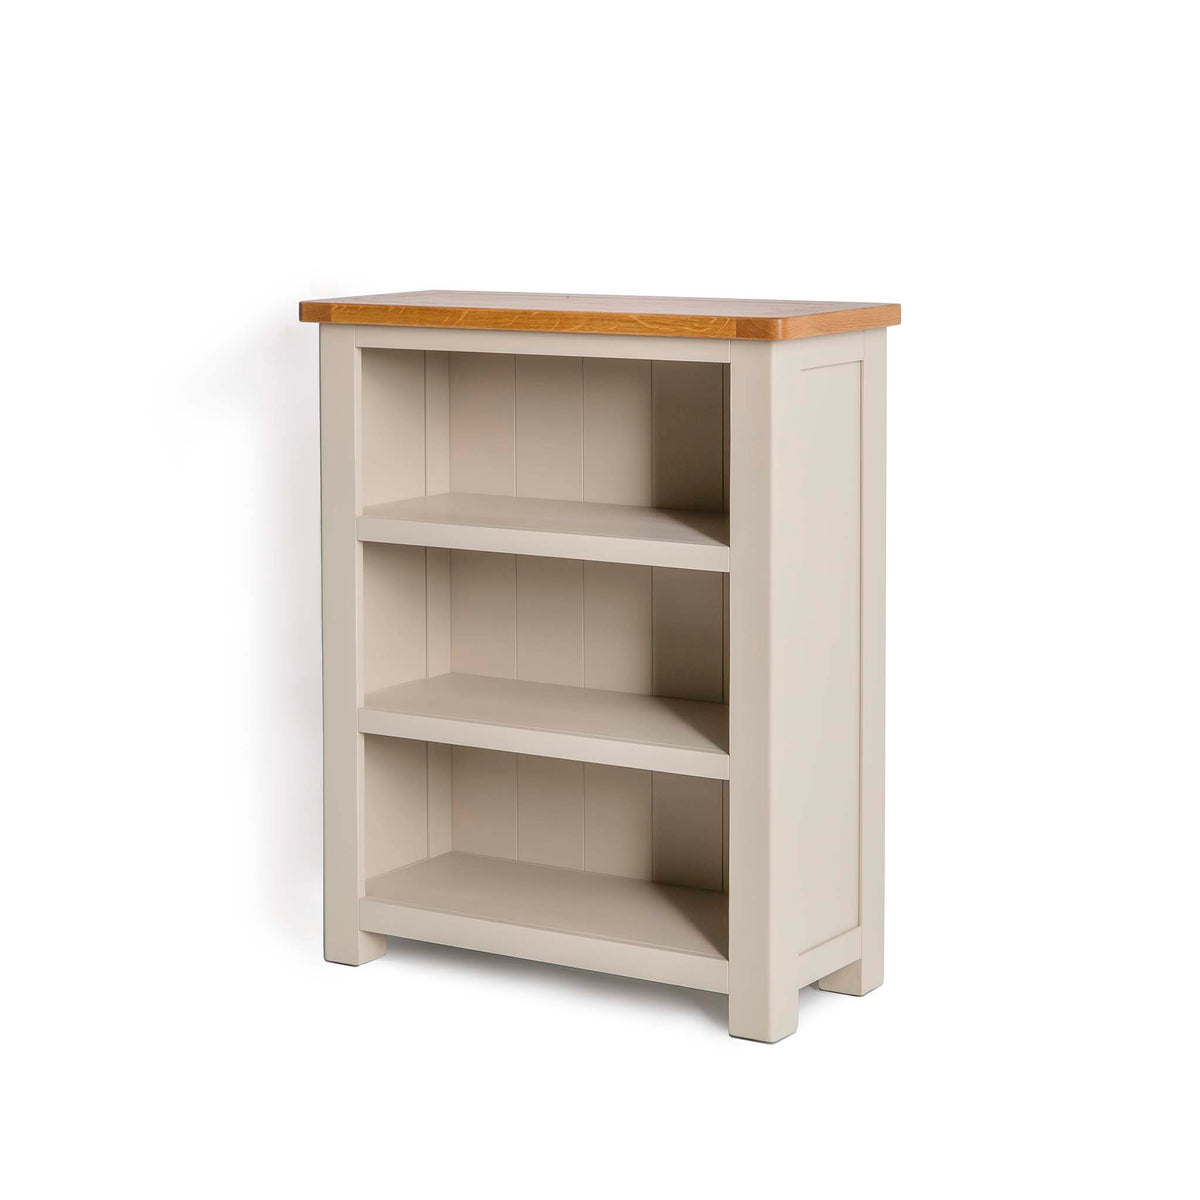 The Padstow Stone Grey Small Low Bookcase - Side view